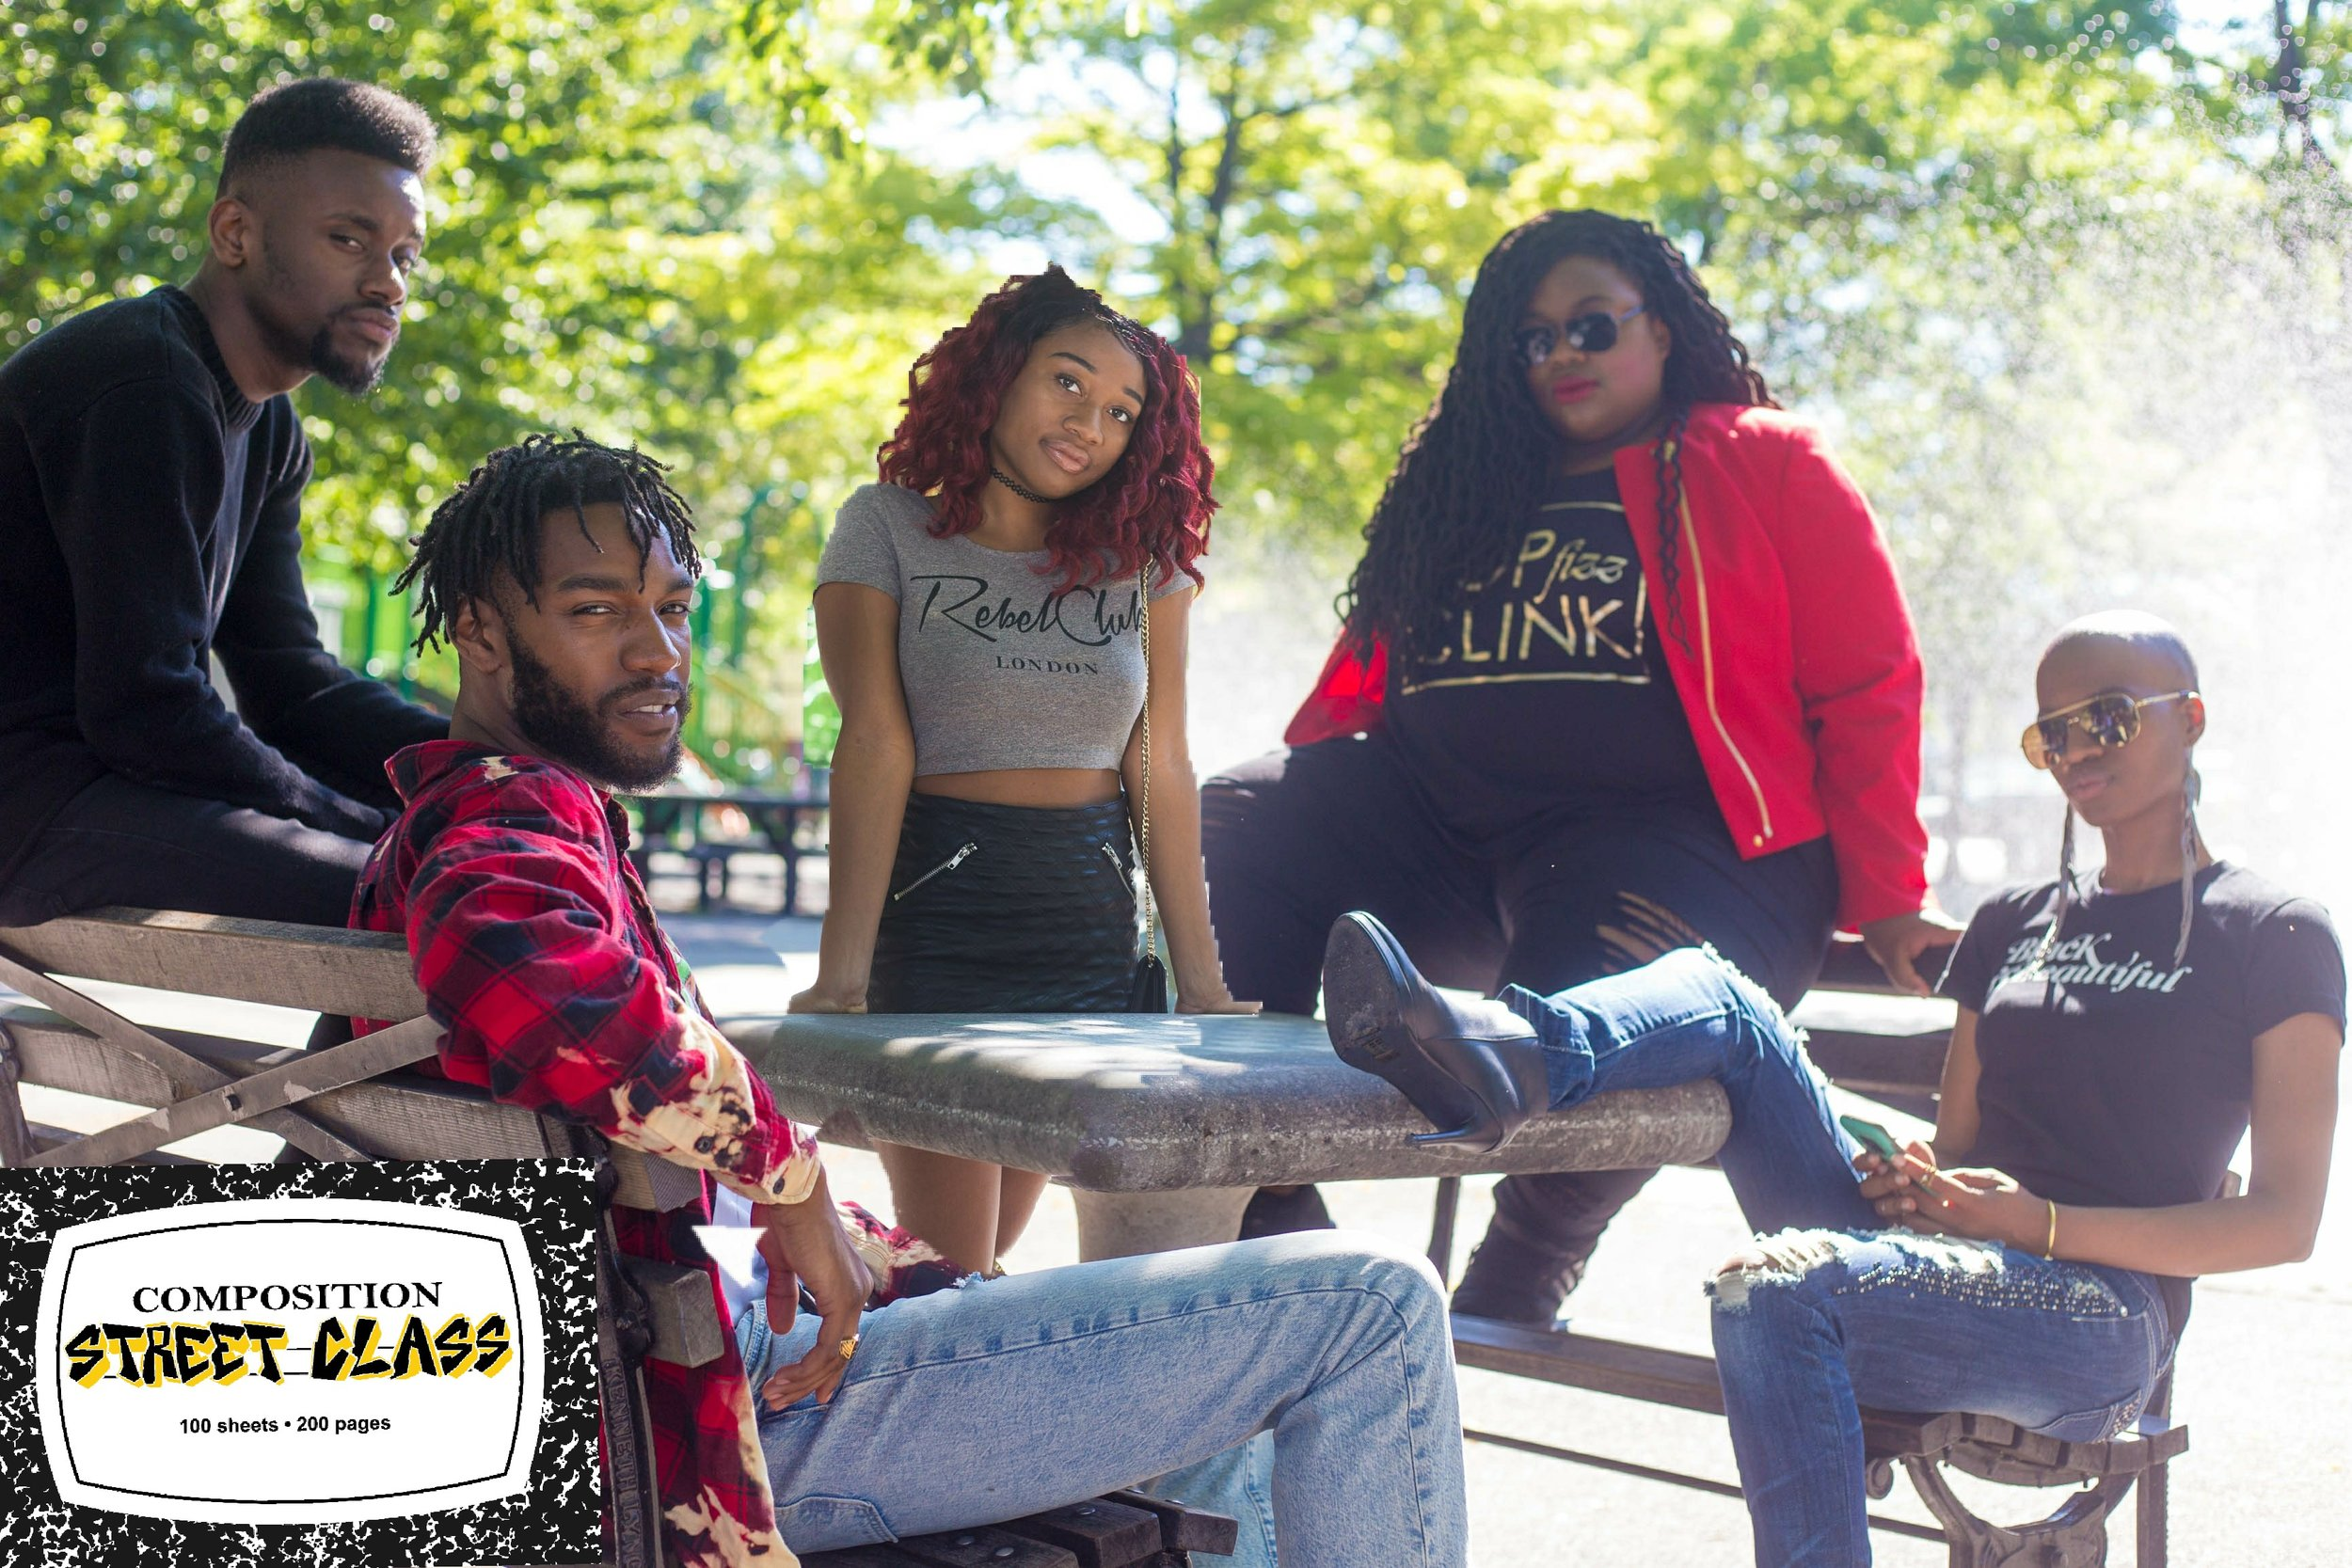 "Ain't nobody fresher than my Clique! Clique! Clique! Clique! Clique! Nneka XOXO, Jeanell Sunshine, Ray Morency, & David Bell have been newly added as co-hosts of Street Class Season 2.  Get ready for some tell it like it is, in yo' face, ""skrange"" debates on Street Class Season 2: The Student Shutdown."